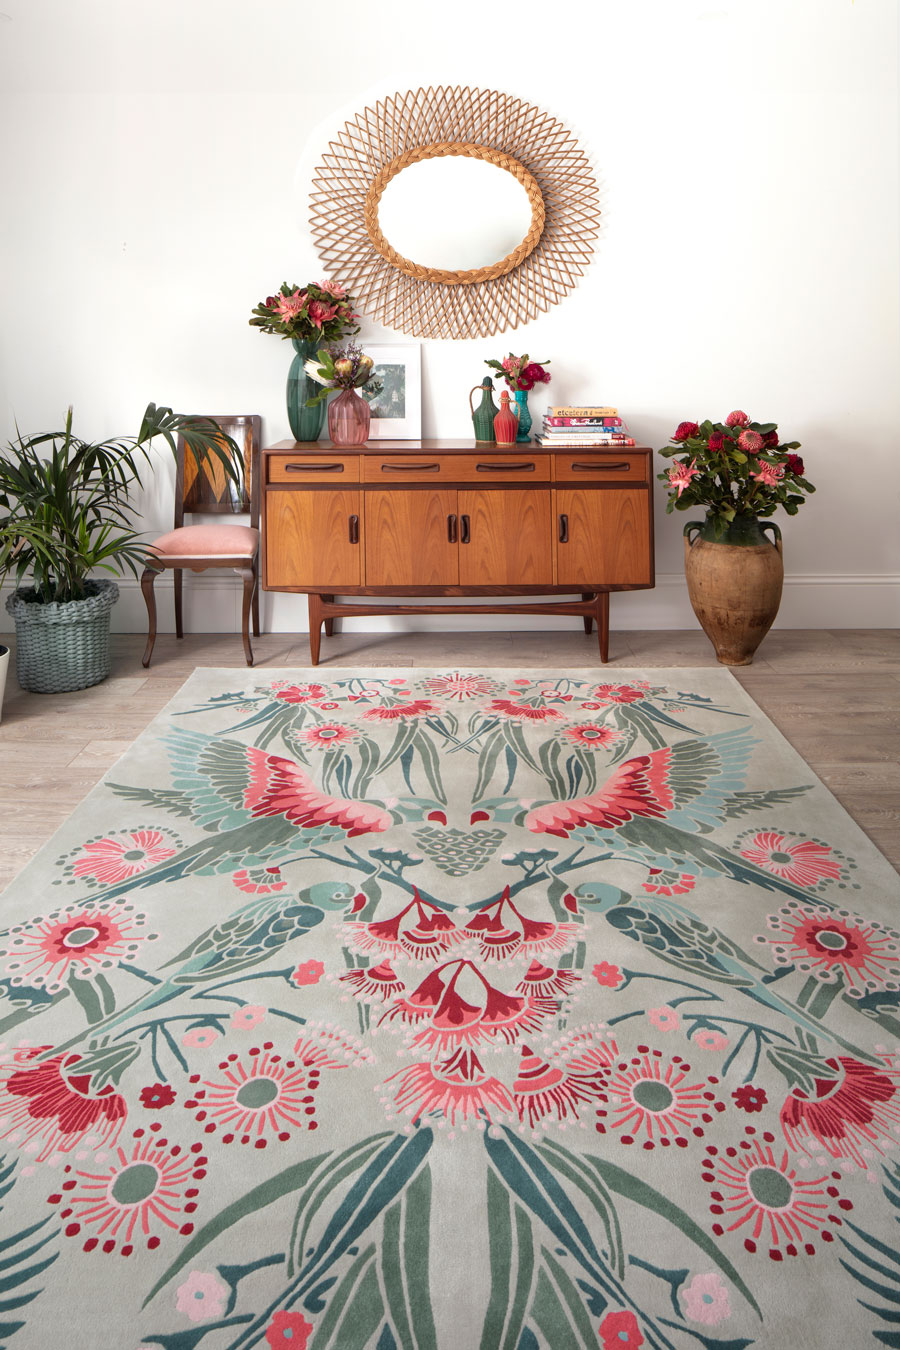 Overhead image of floral Gumnut Paradise rug by House Of Heras in mint green colour